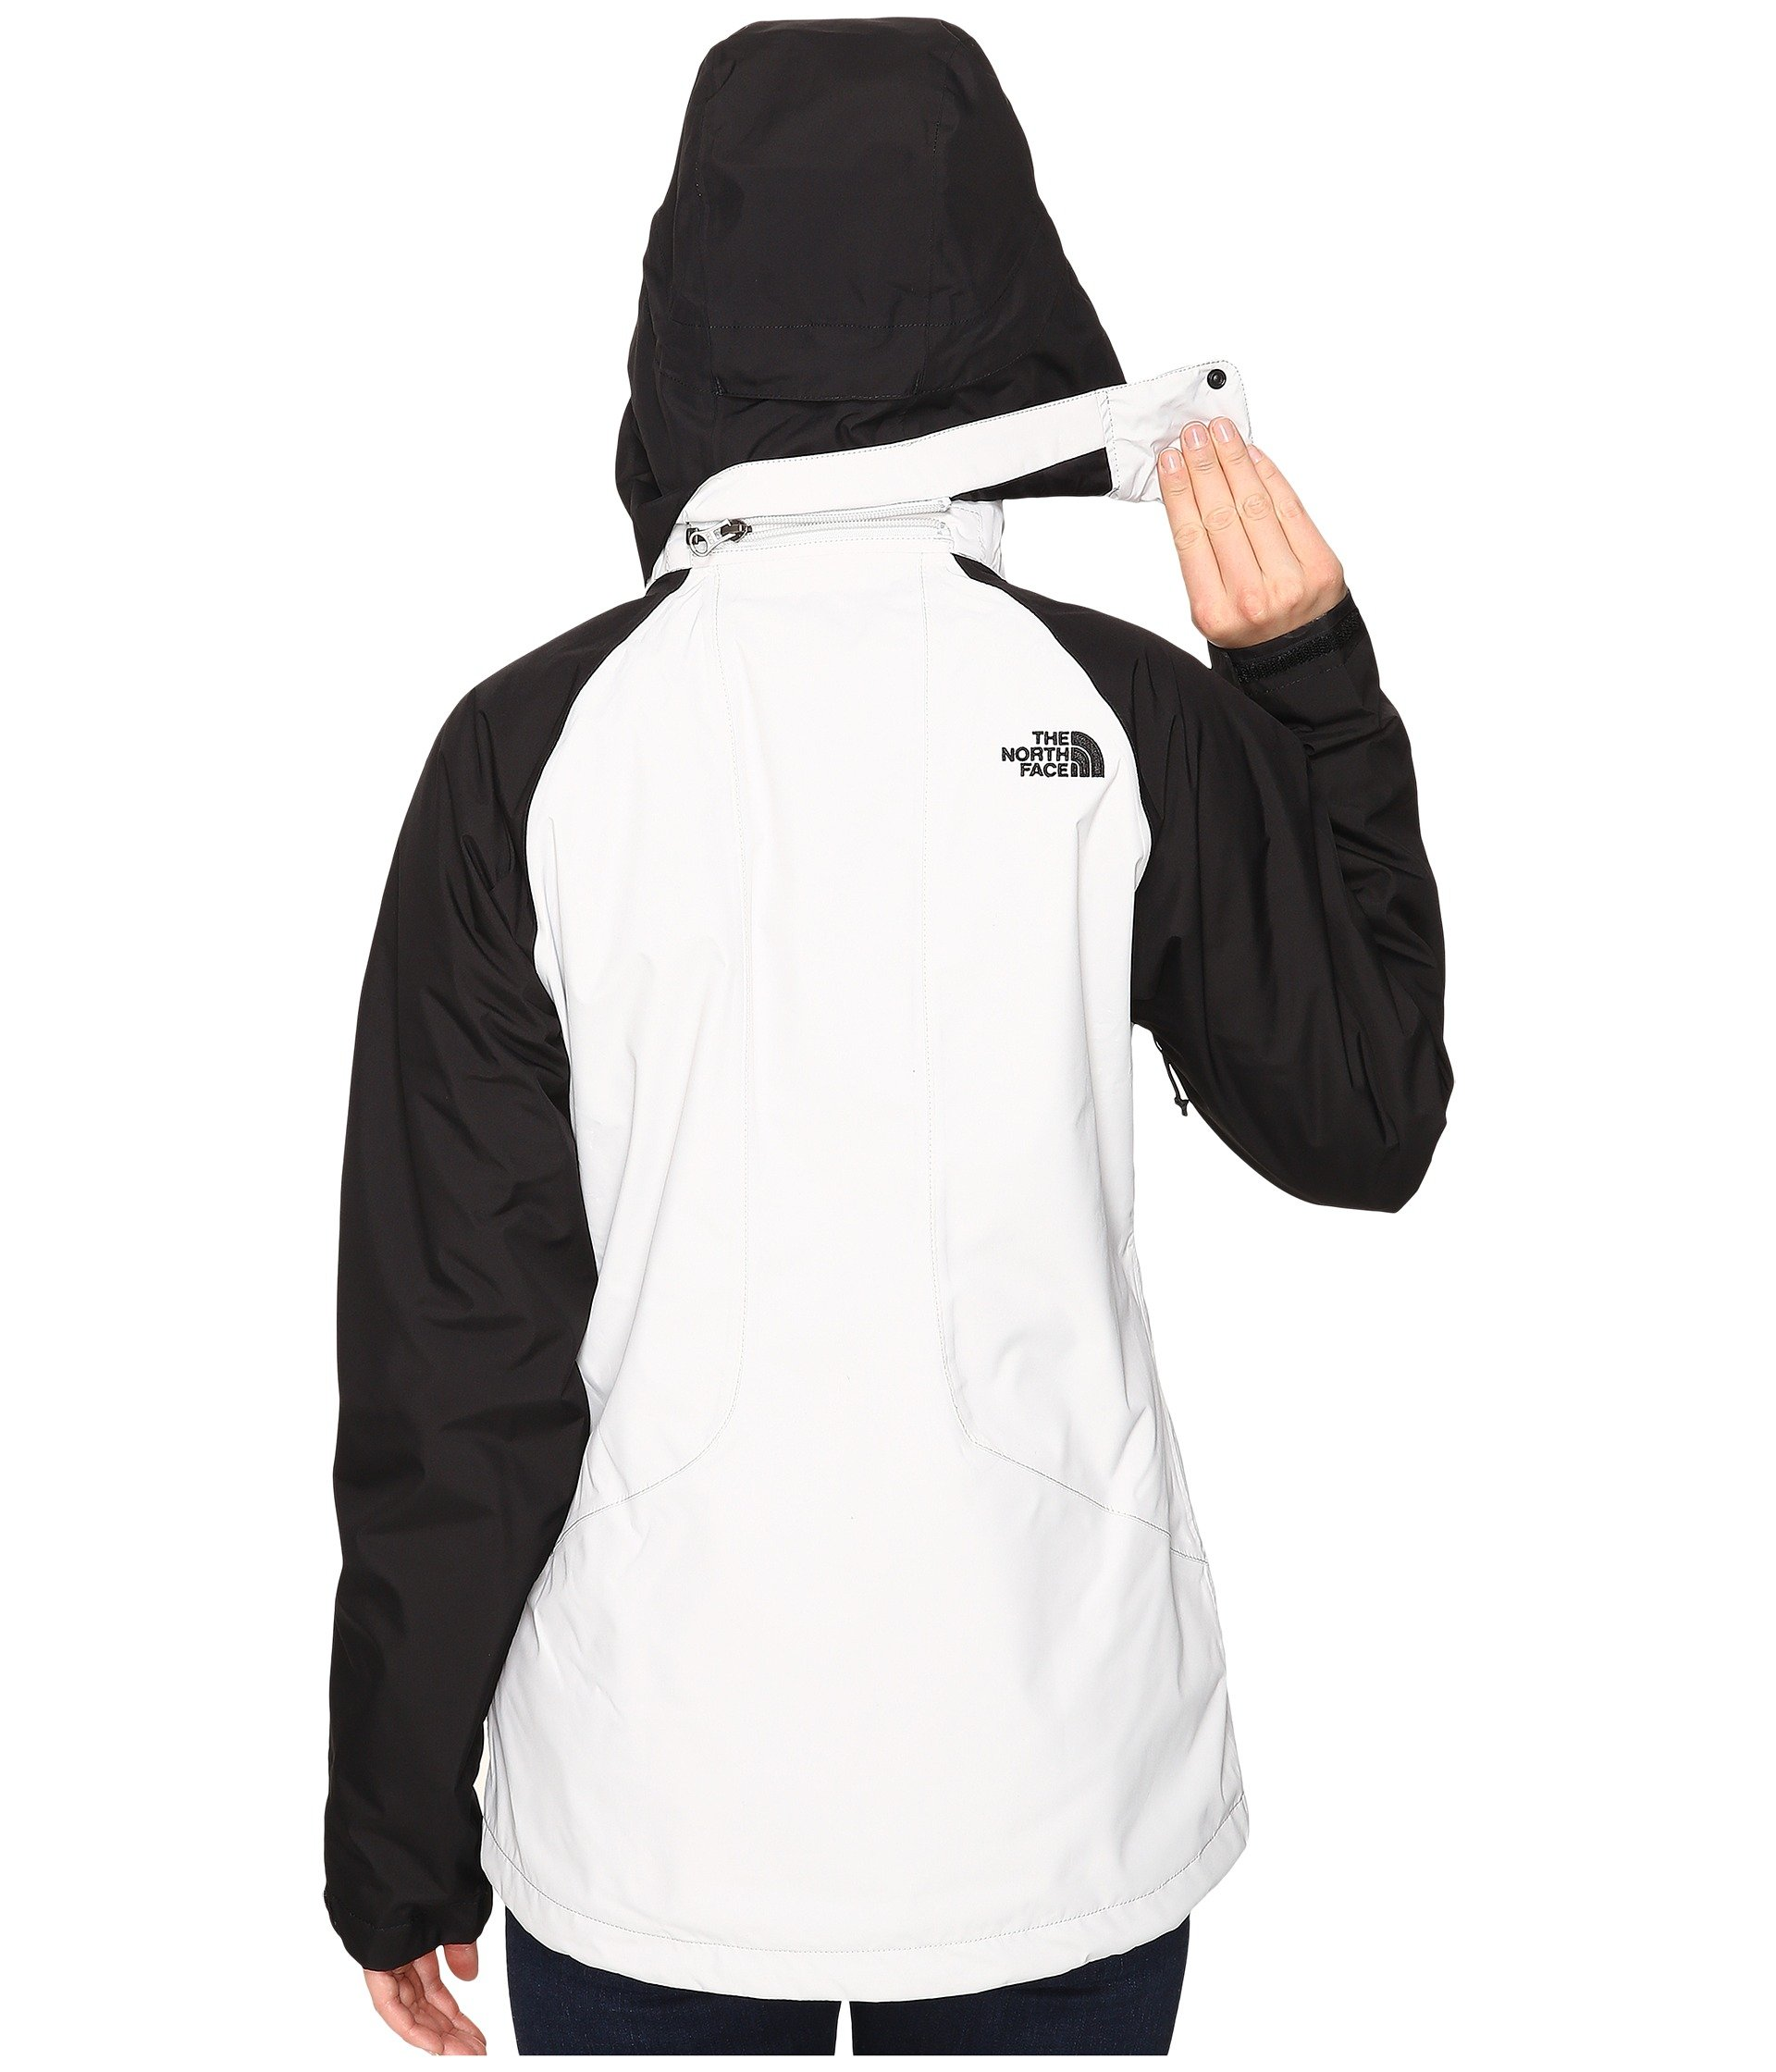 North Face Womens Boundary Triclimate Jacket - Large - Lunar Ice Grey/TNF Black by The North Face (Image #4)